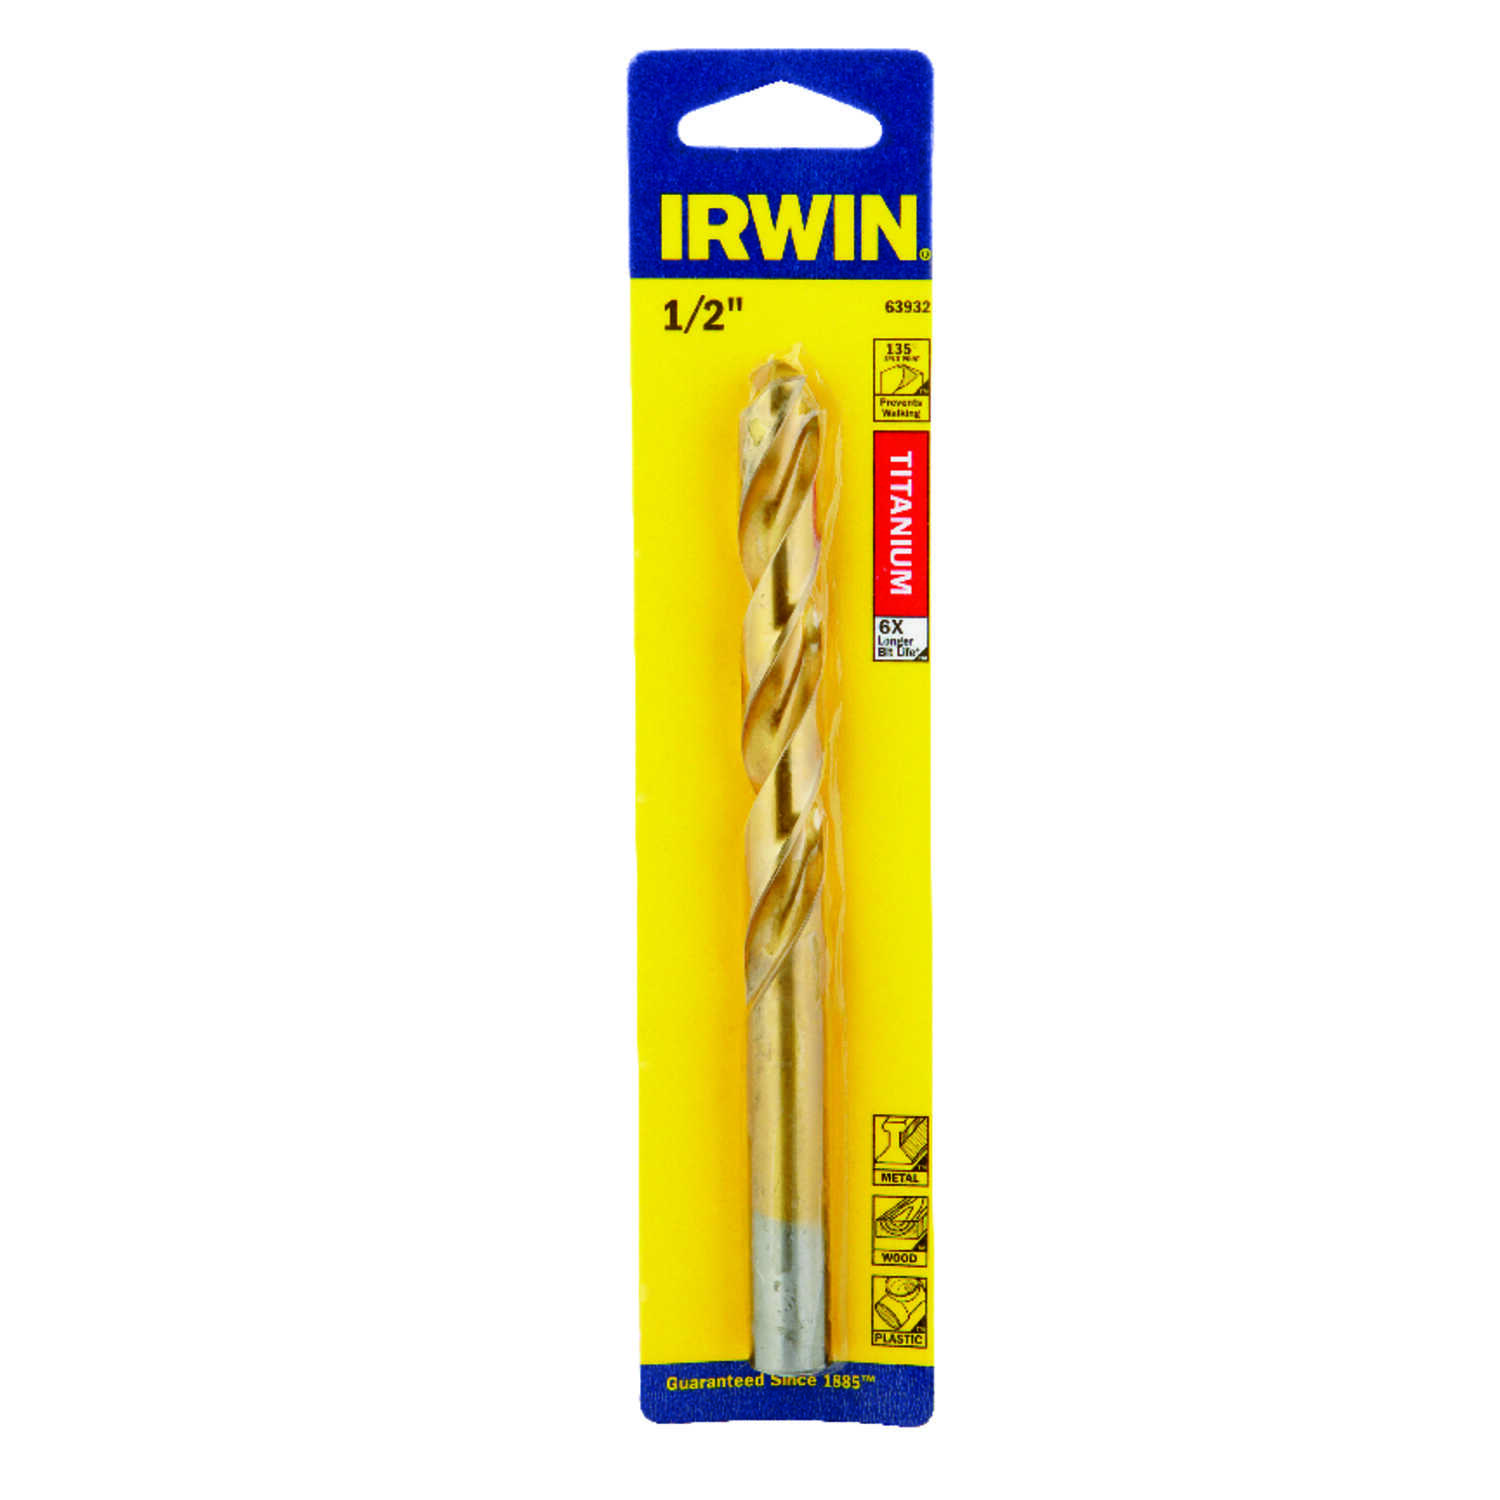 Irwin  1/2 in. Dia. x 6 in. L High Speed Steel  Drill Bit  1 pc.